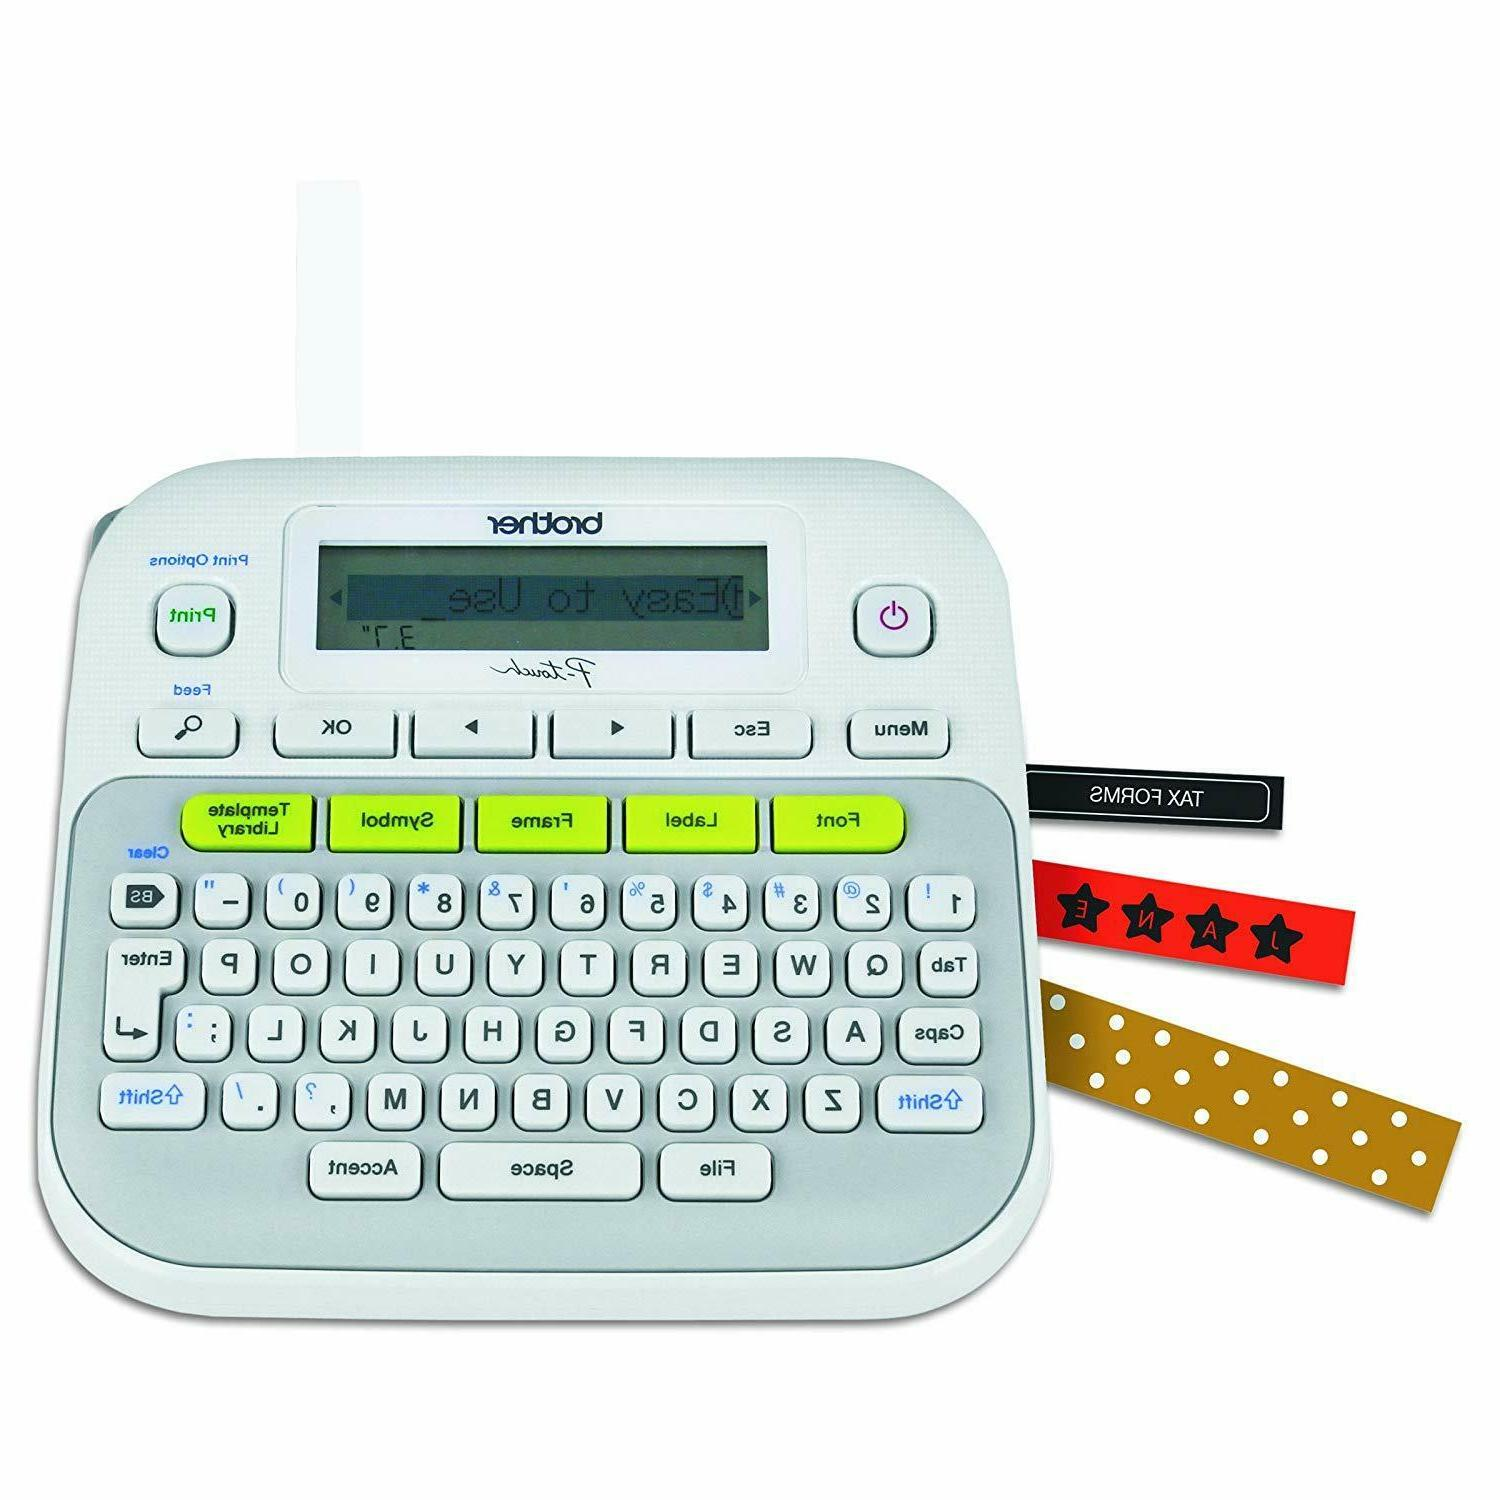 p touch ptd210 label maker one touch